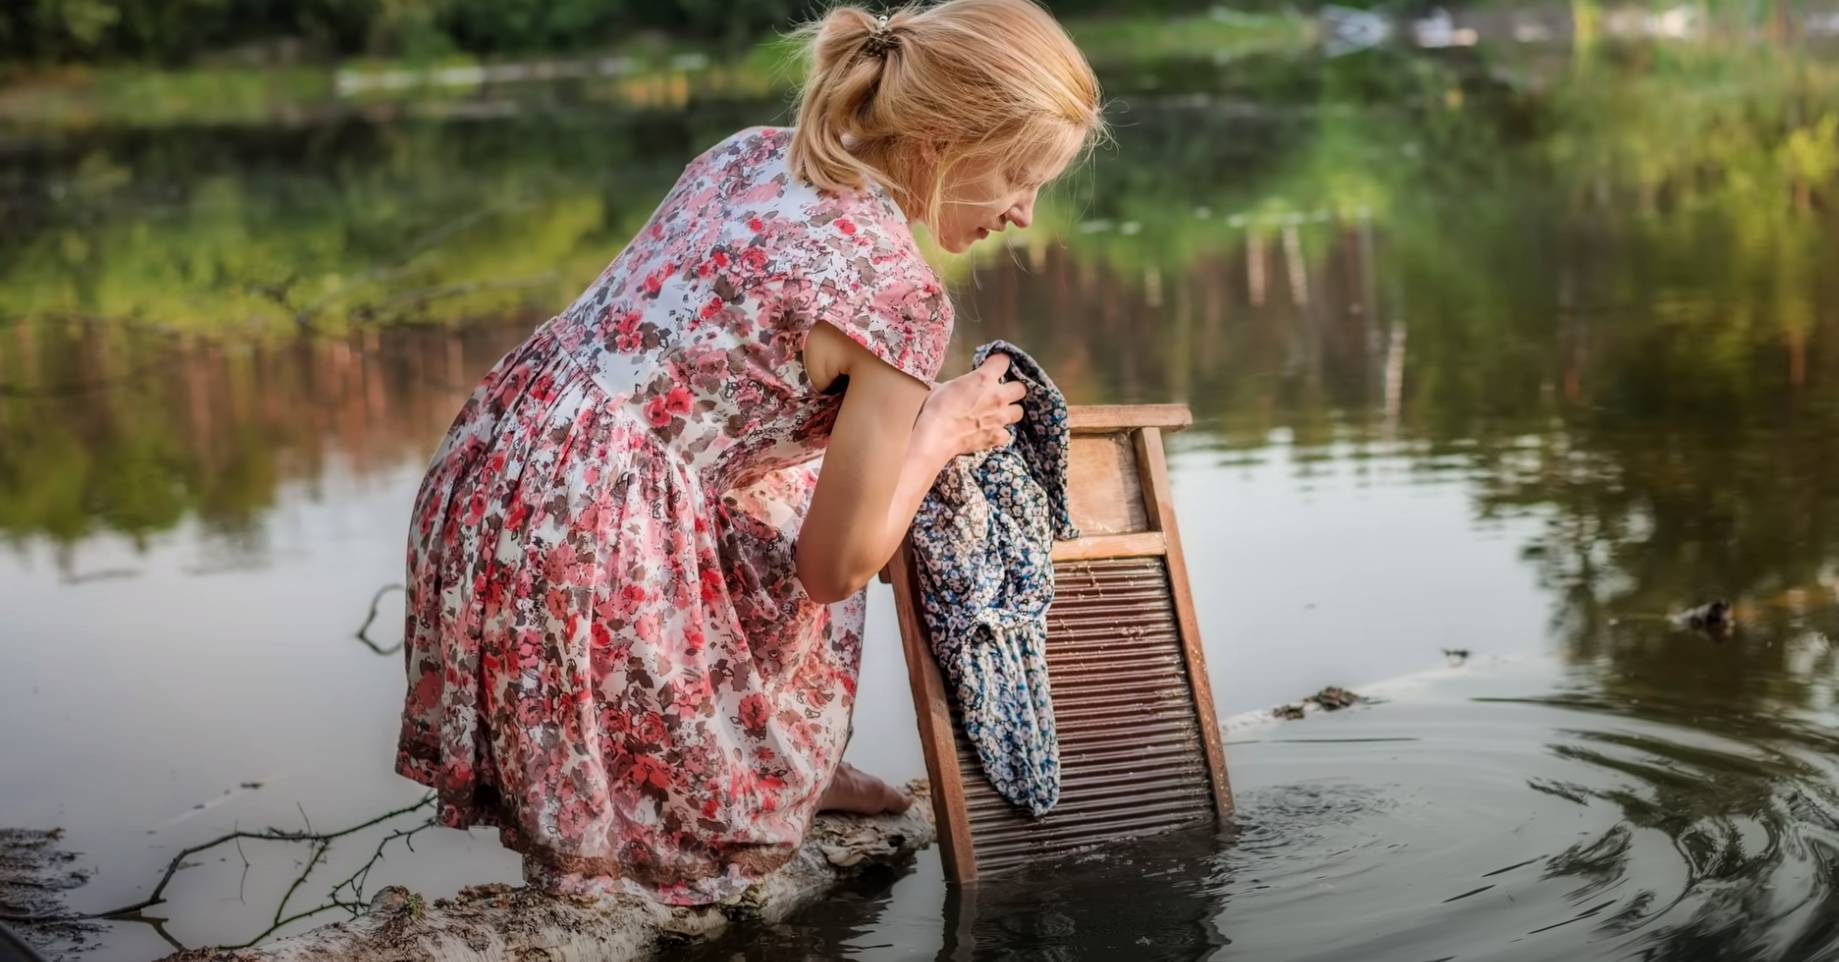 washboard to clean clothes in a lake